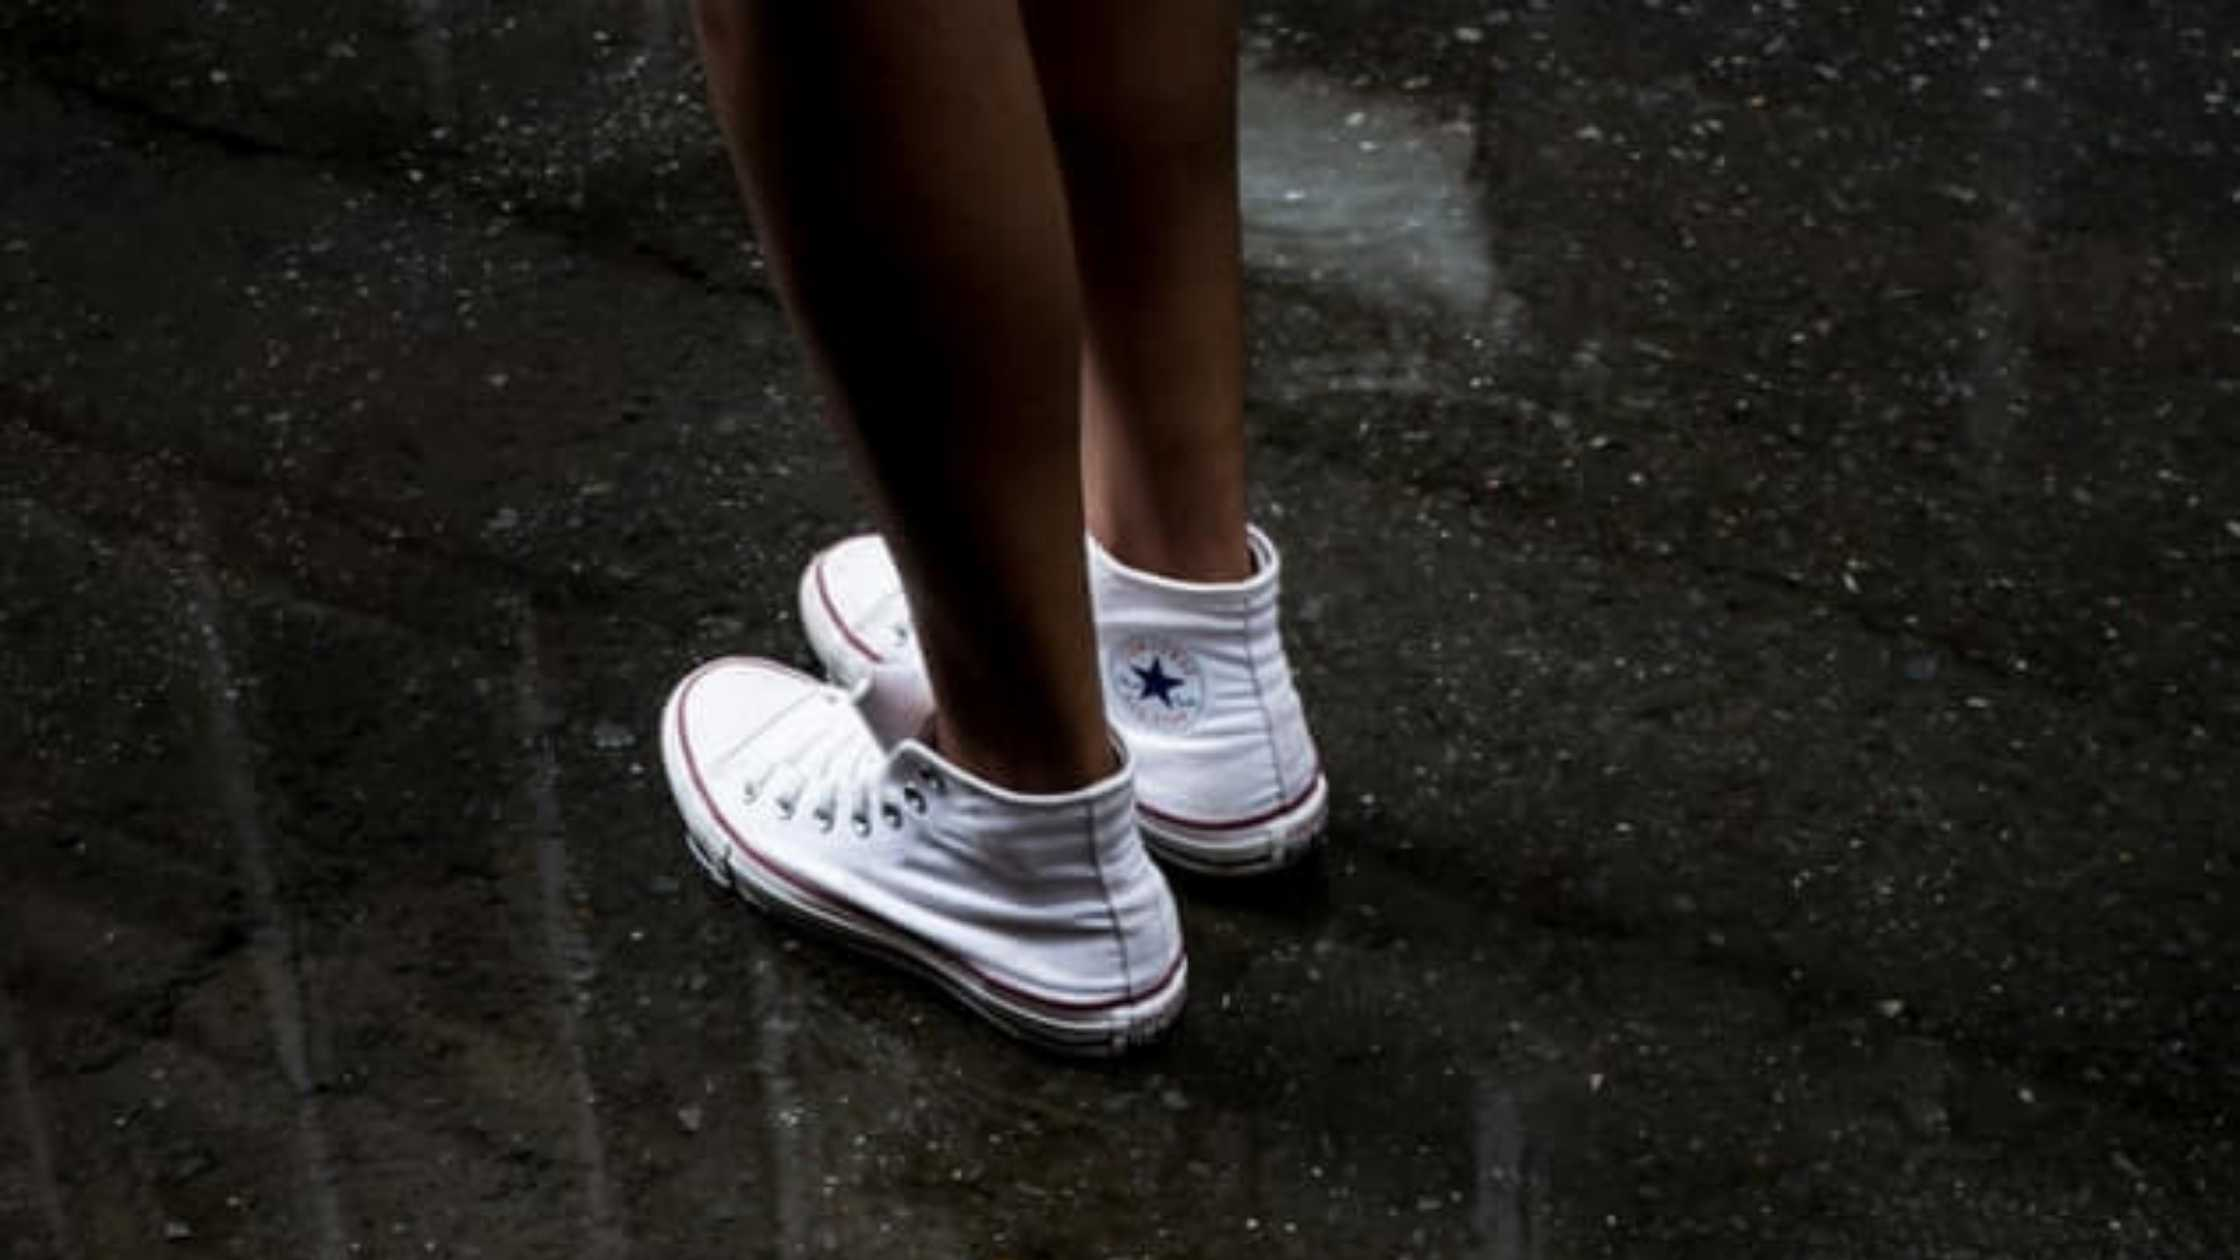 How to Clean White Converse: 6 Easy Steps